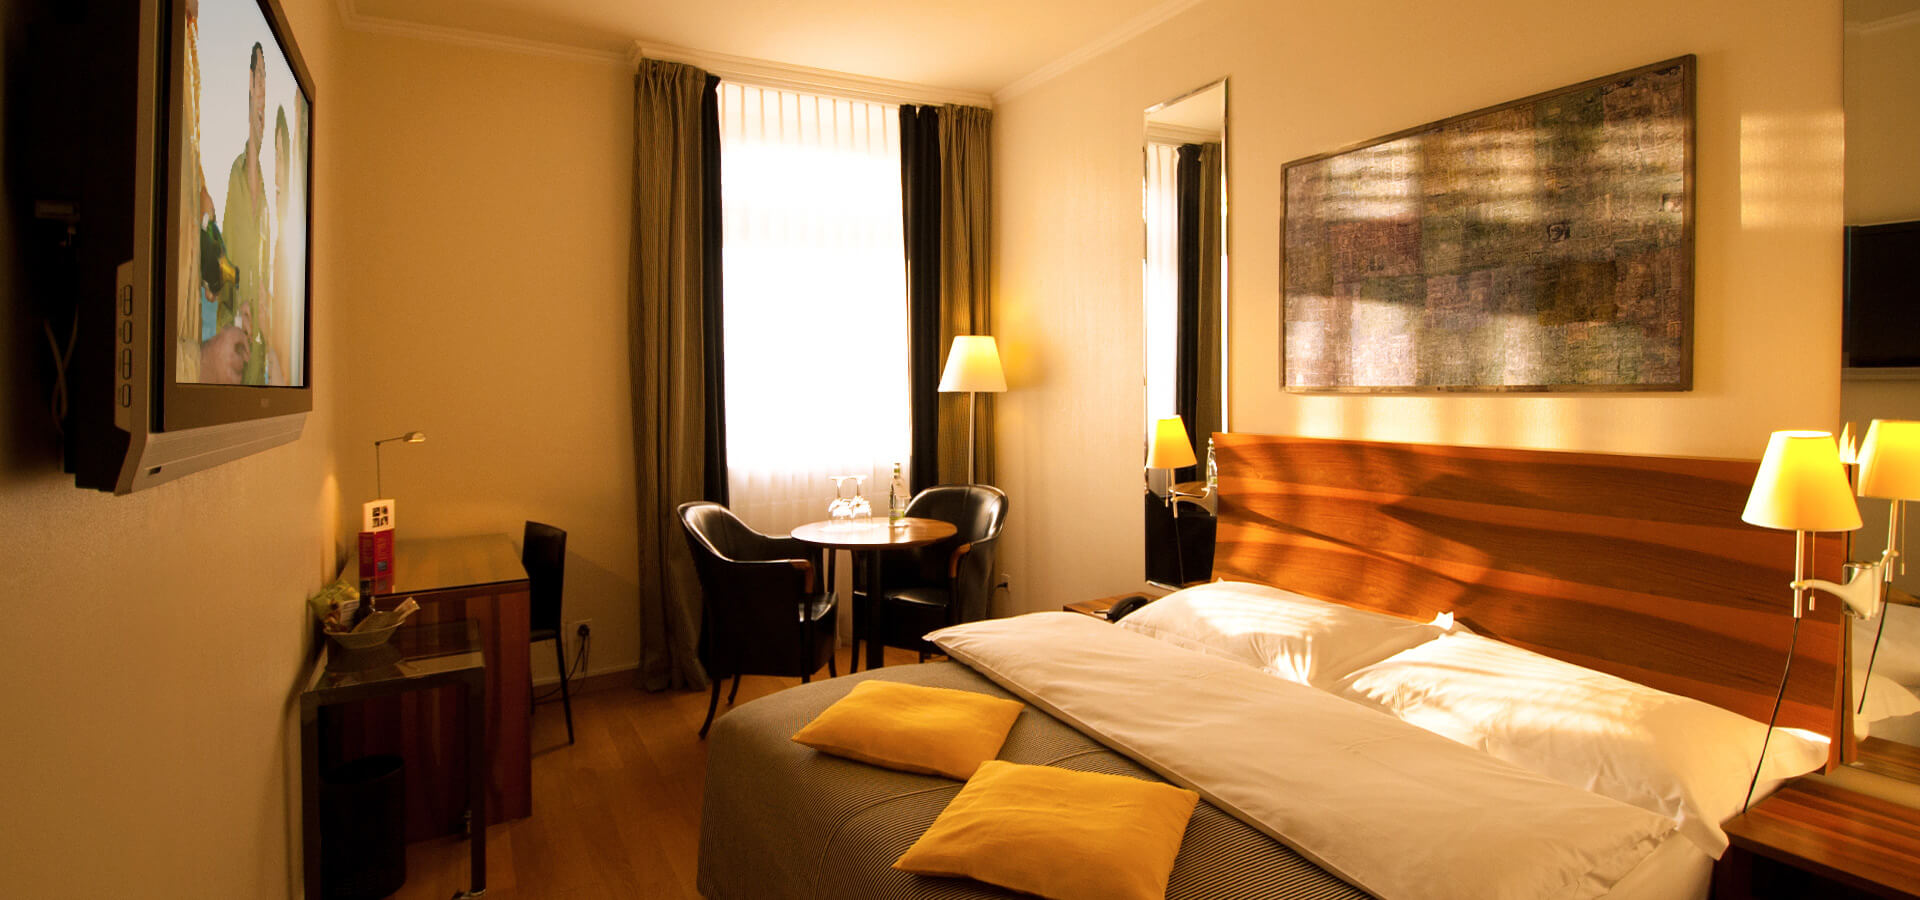 Central Plaza Hotel | City Hotel of Zurich since 1883